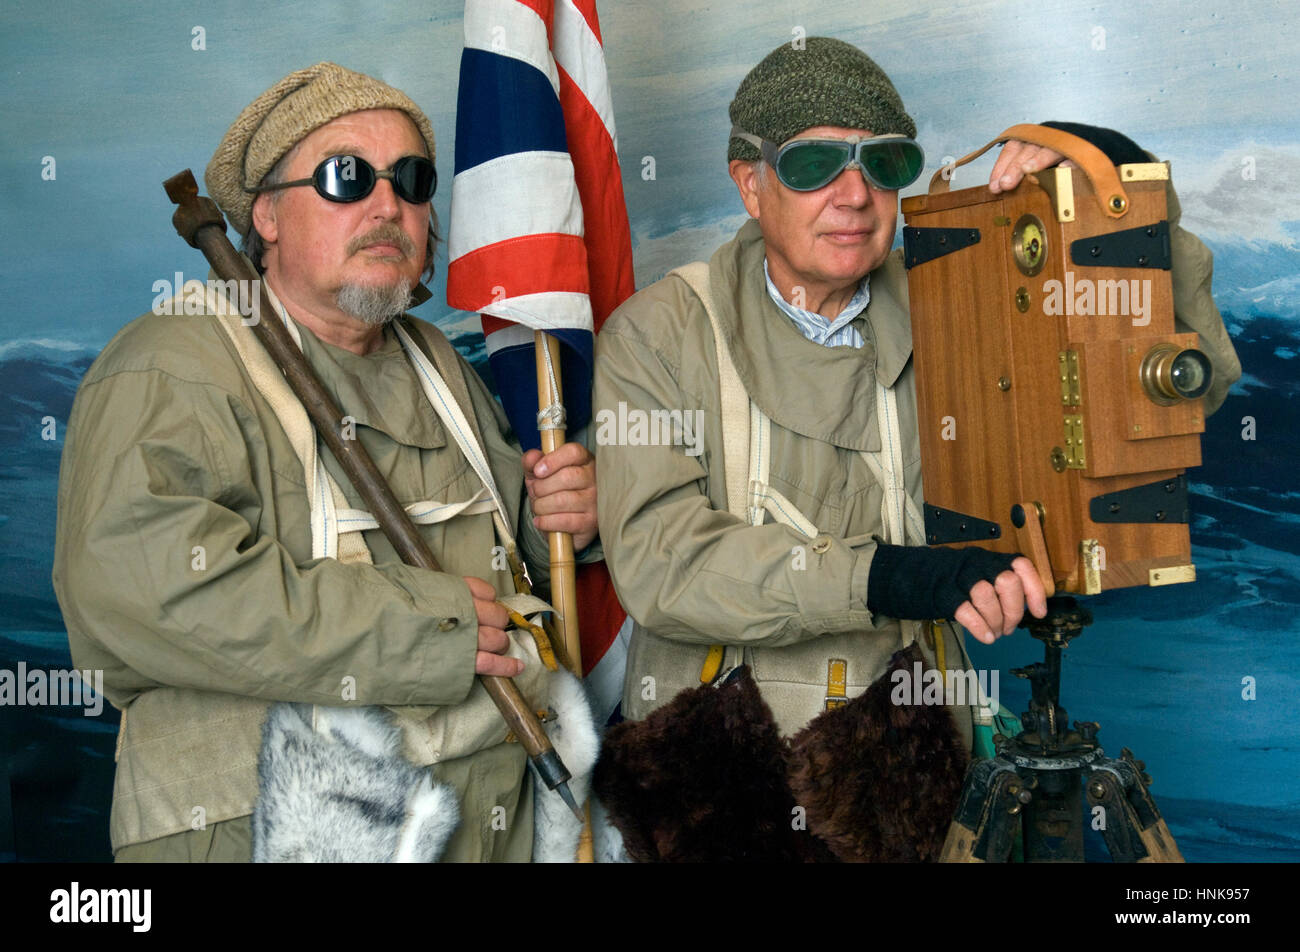 Polar explorer reenactors, Bob Leedham (beard) and Mick Parker, who dress in authentic clothing and use period equipment - Stock Image